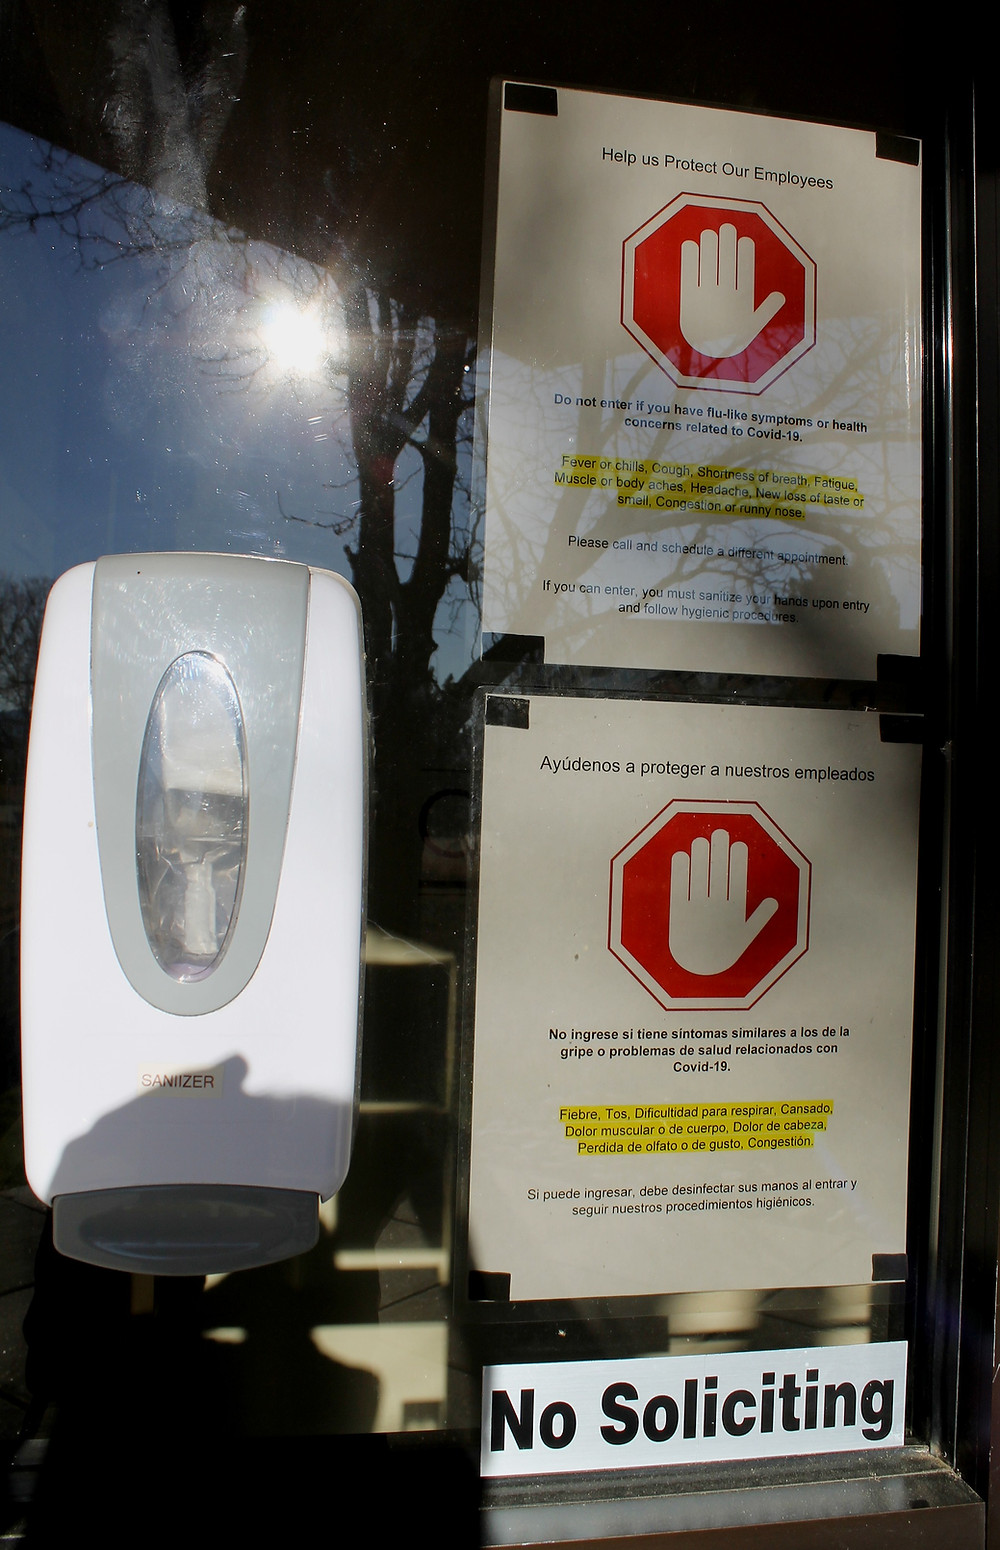 A picture showing a hand sanitizer dispenser and several warning signs discussing COVID-19 guidelines at the front door of the Claremont office.